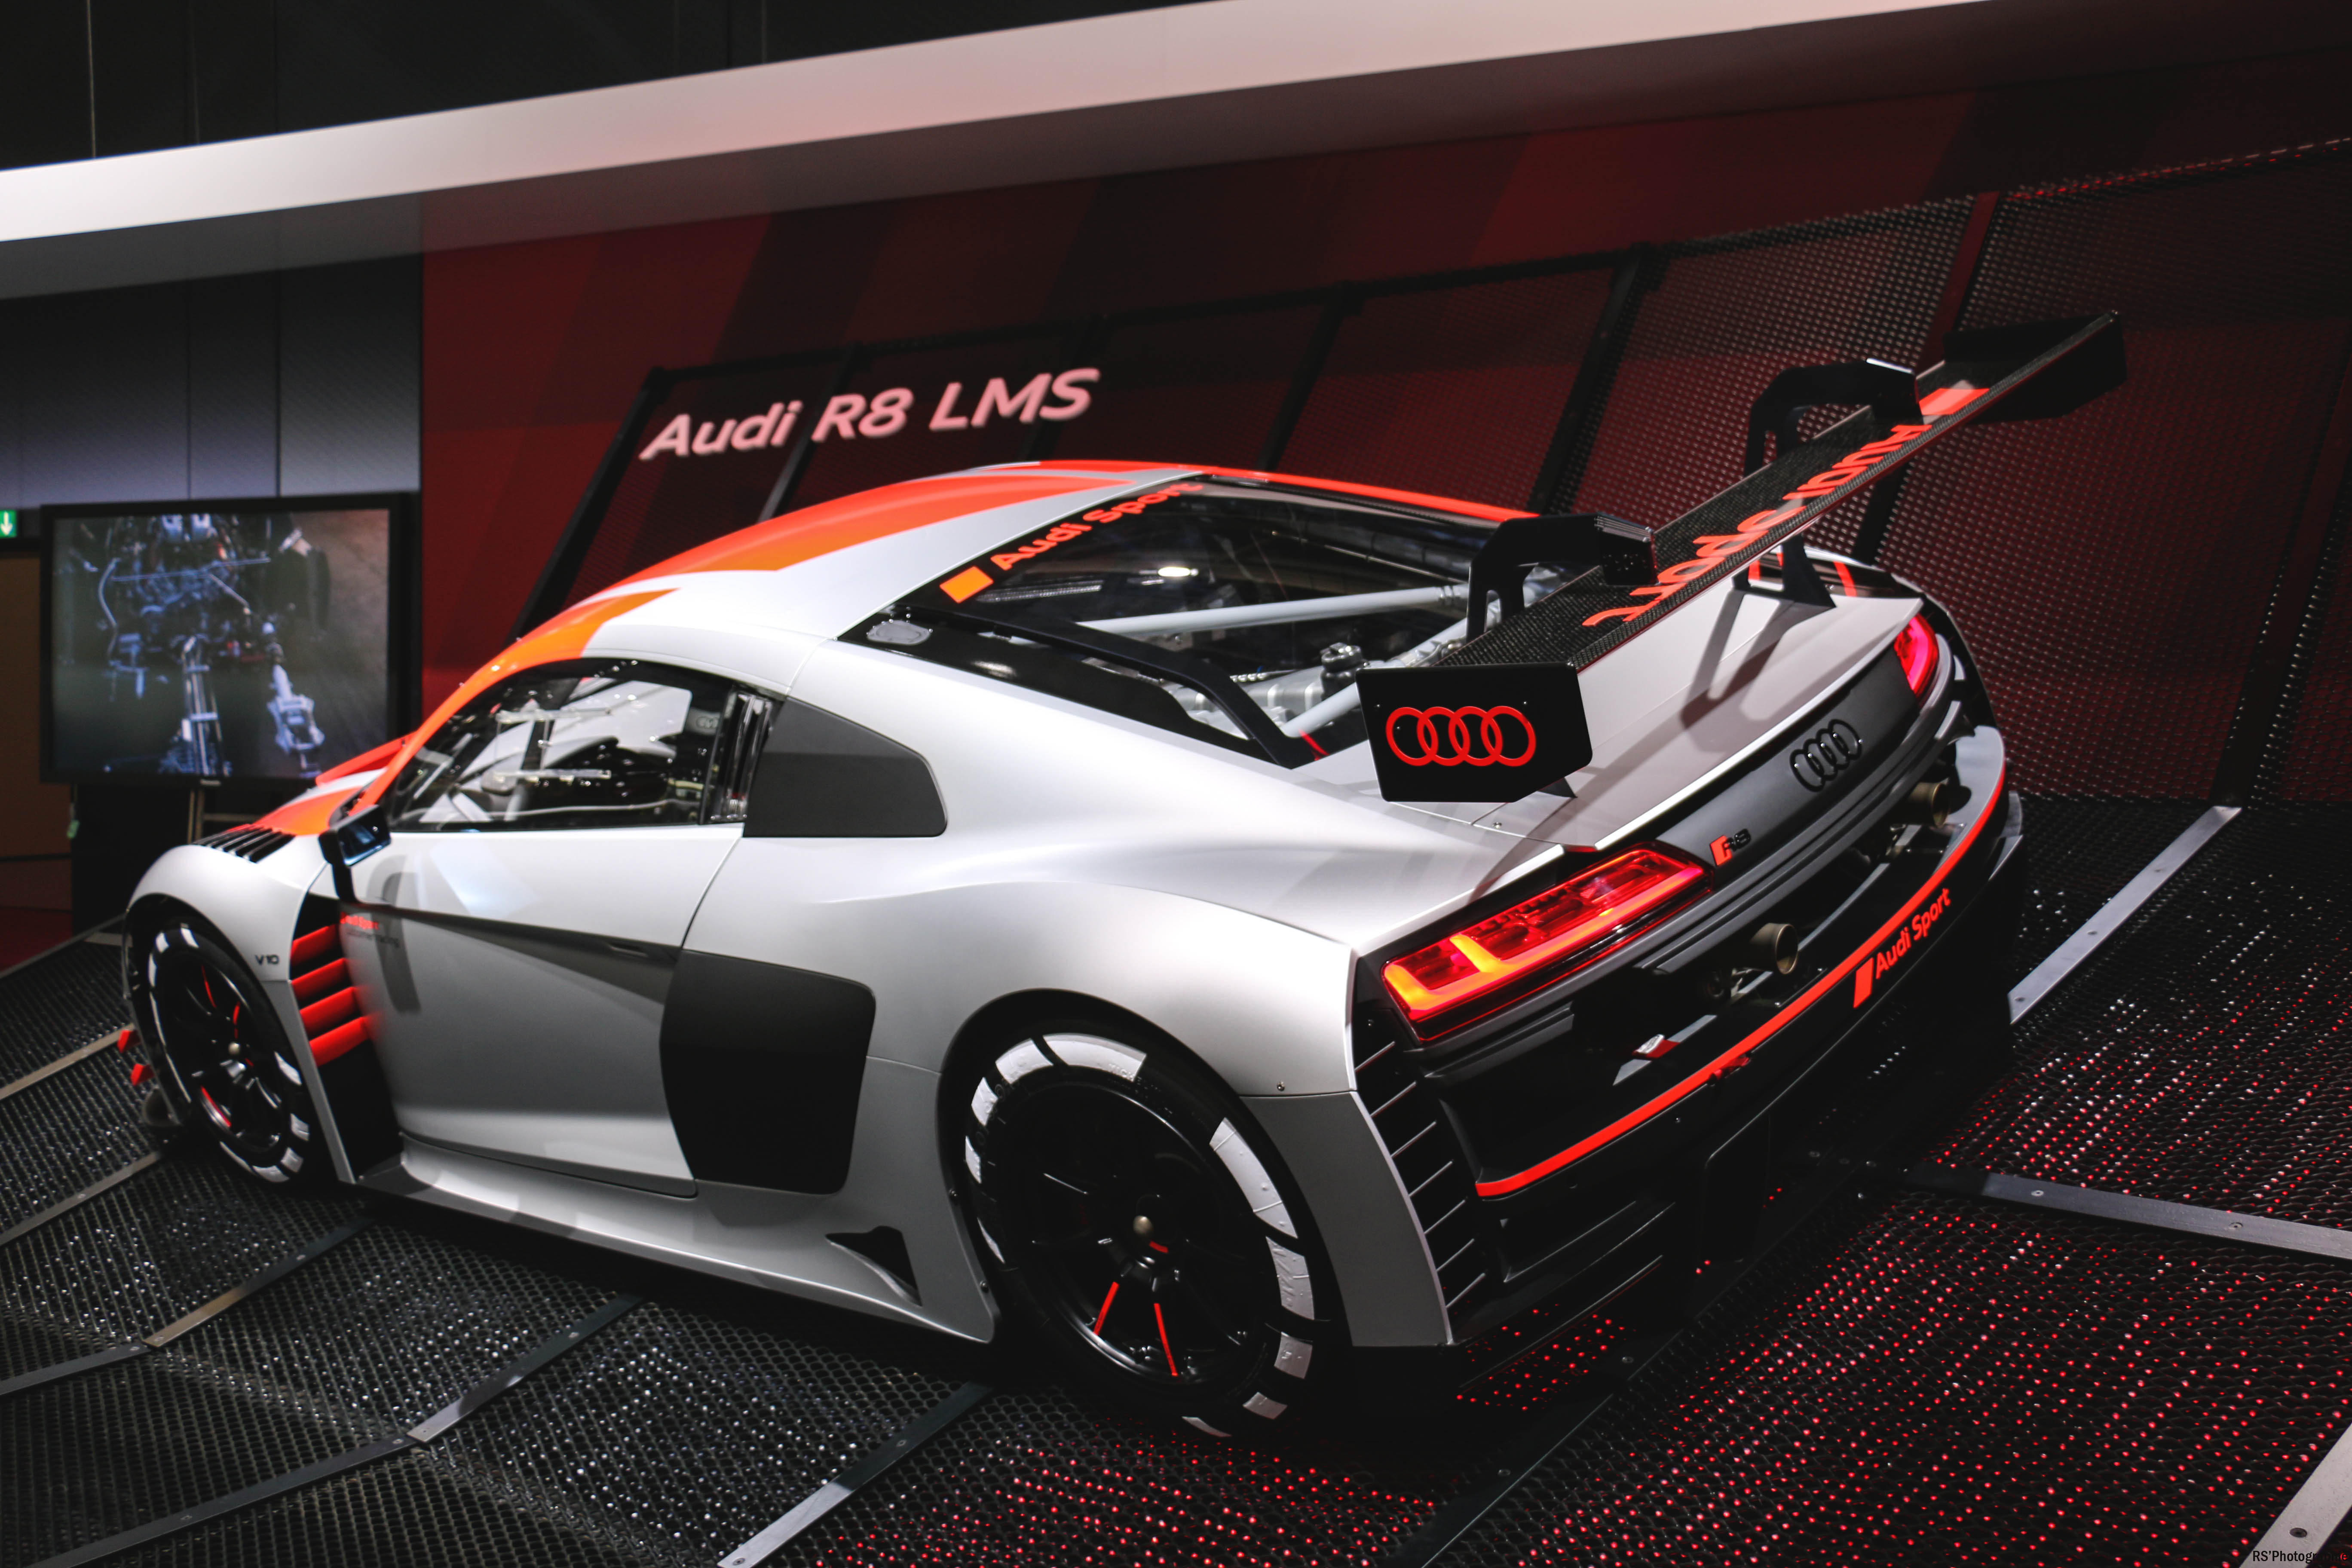 Audi Sport R8 LMS - rear - Paris Motor Show - 2018 - Mondial Auto - photo by Arnaud Demasier RS Photographie